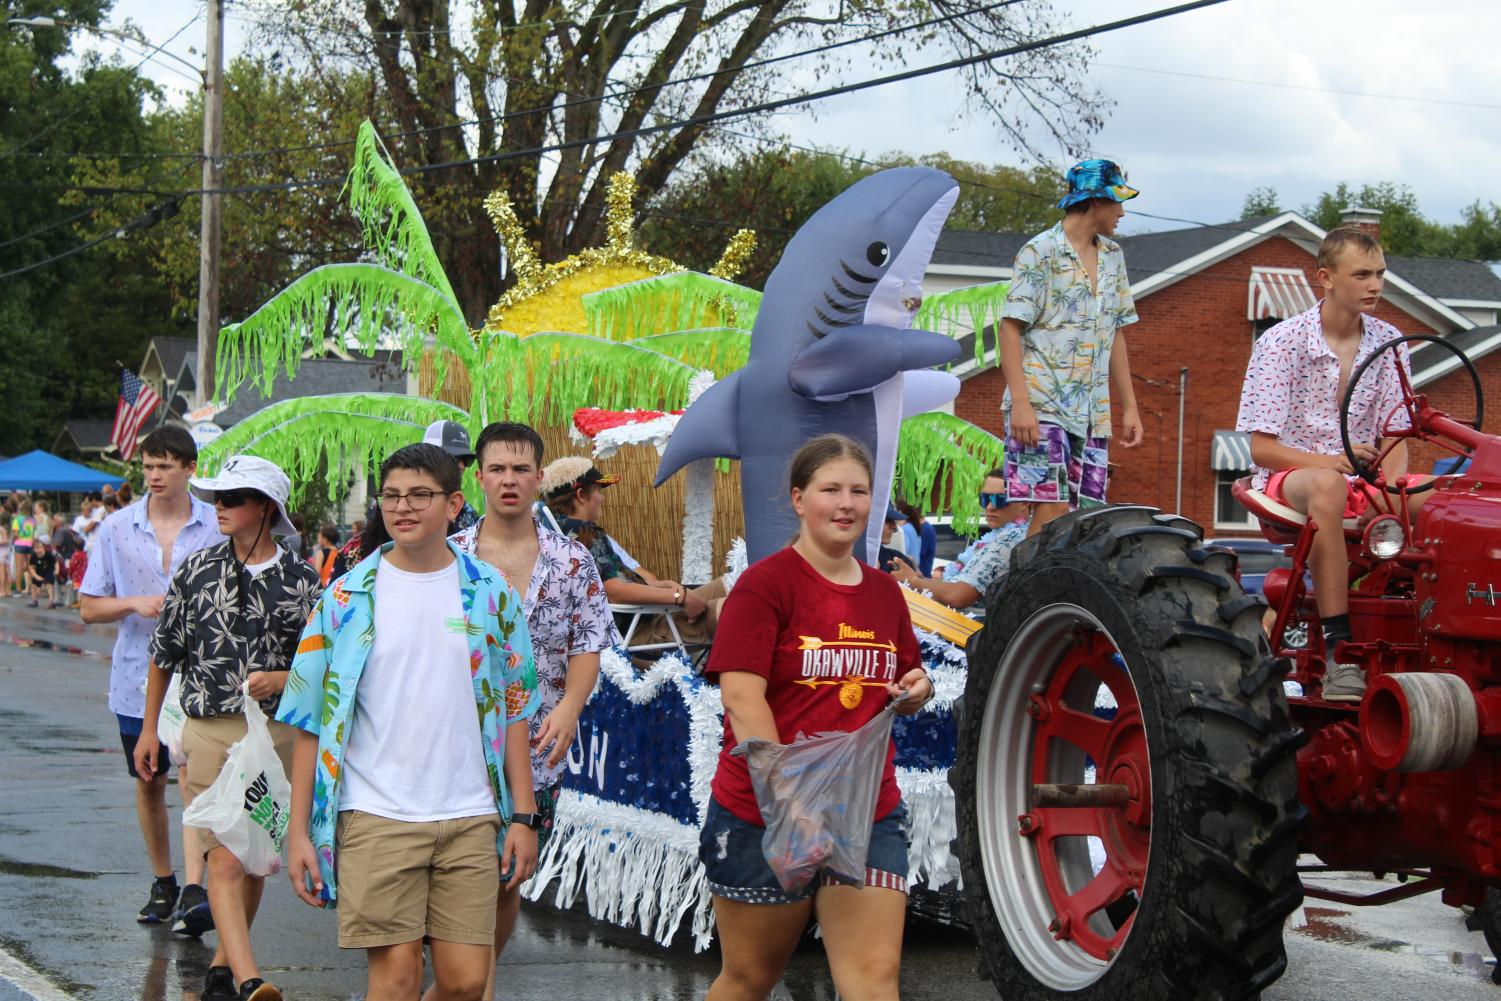 FFA float, Vacation, awarded 3rd place in Wheat Fest parade.